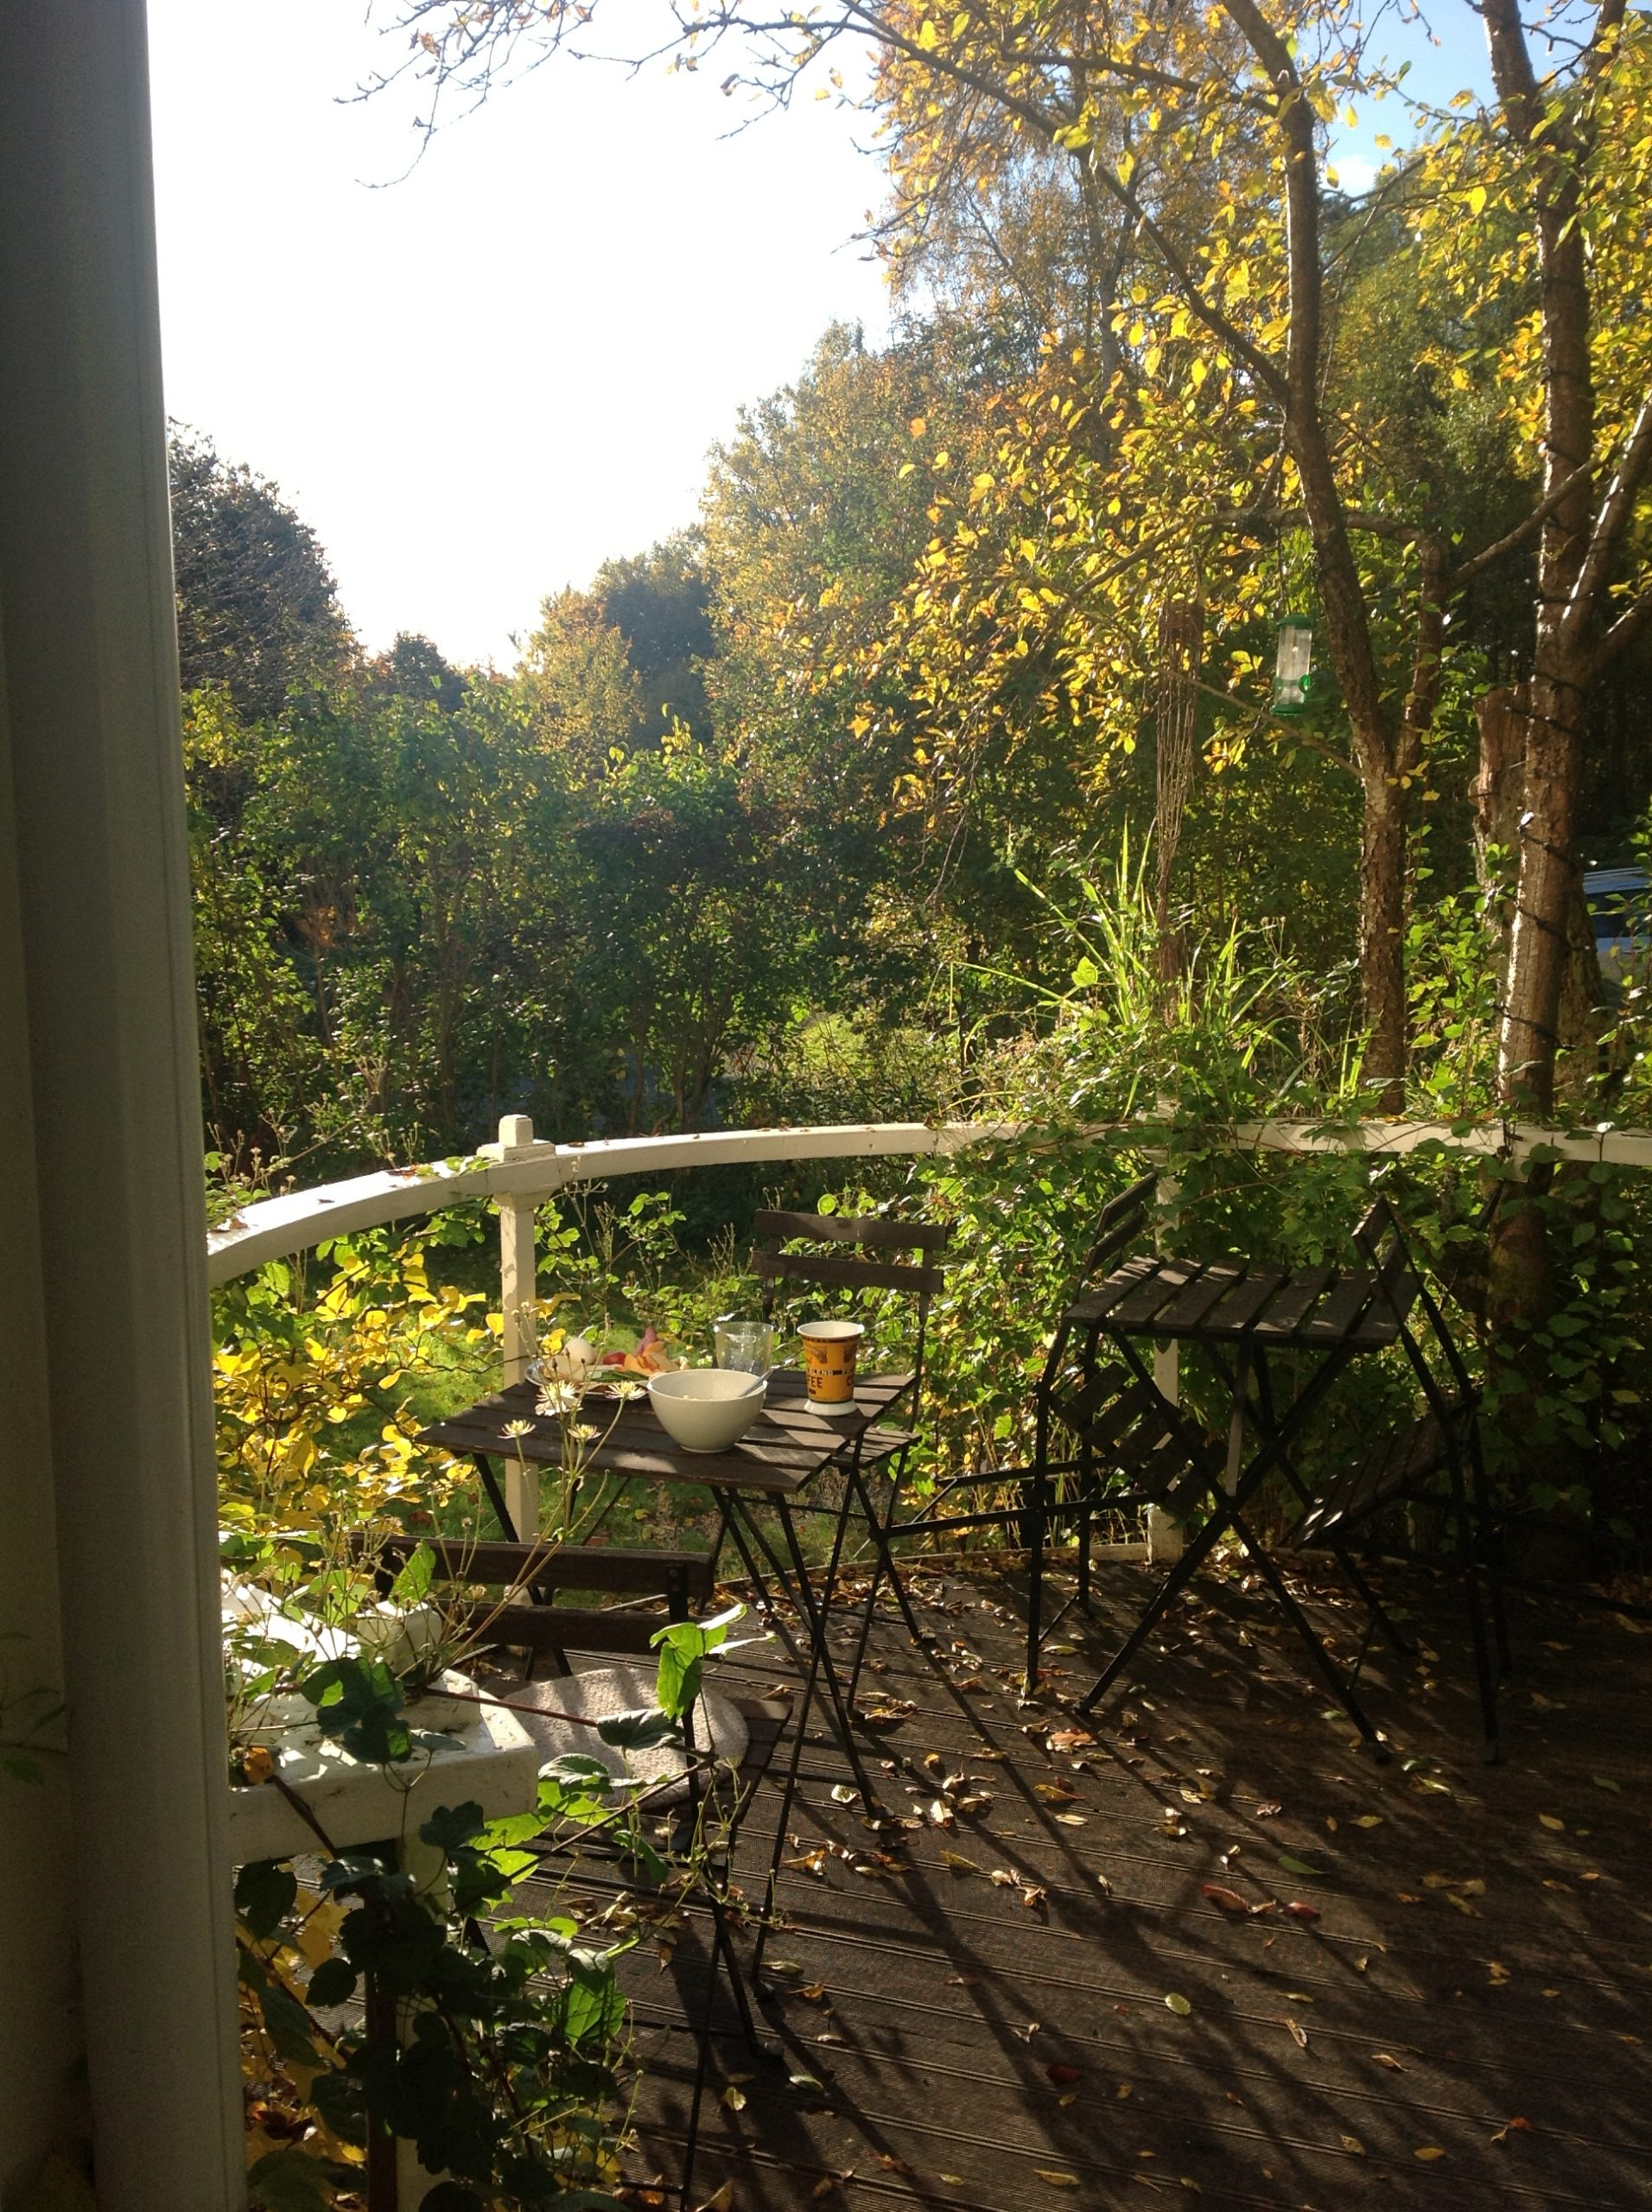 Breakfast on south porch in September